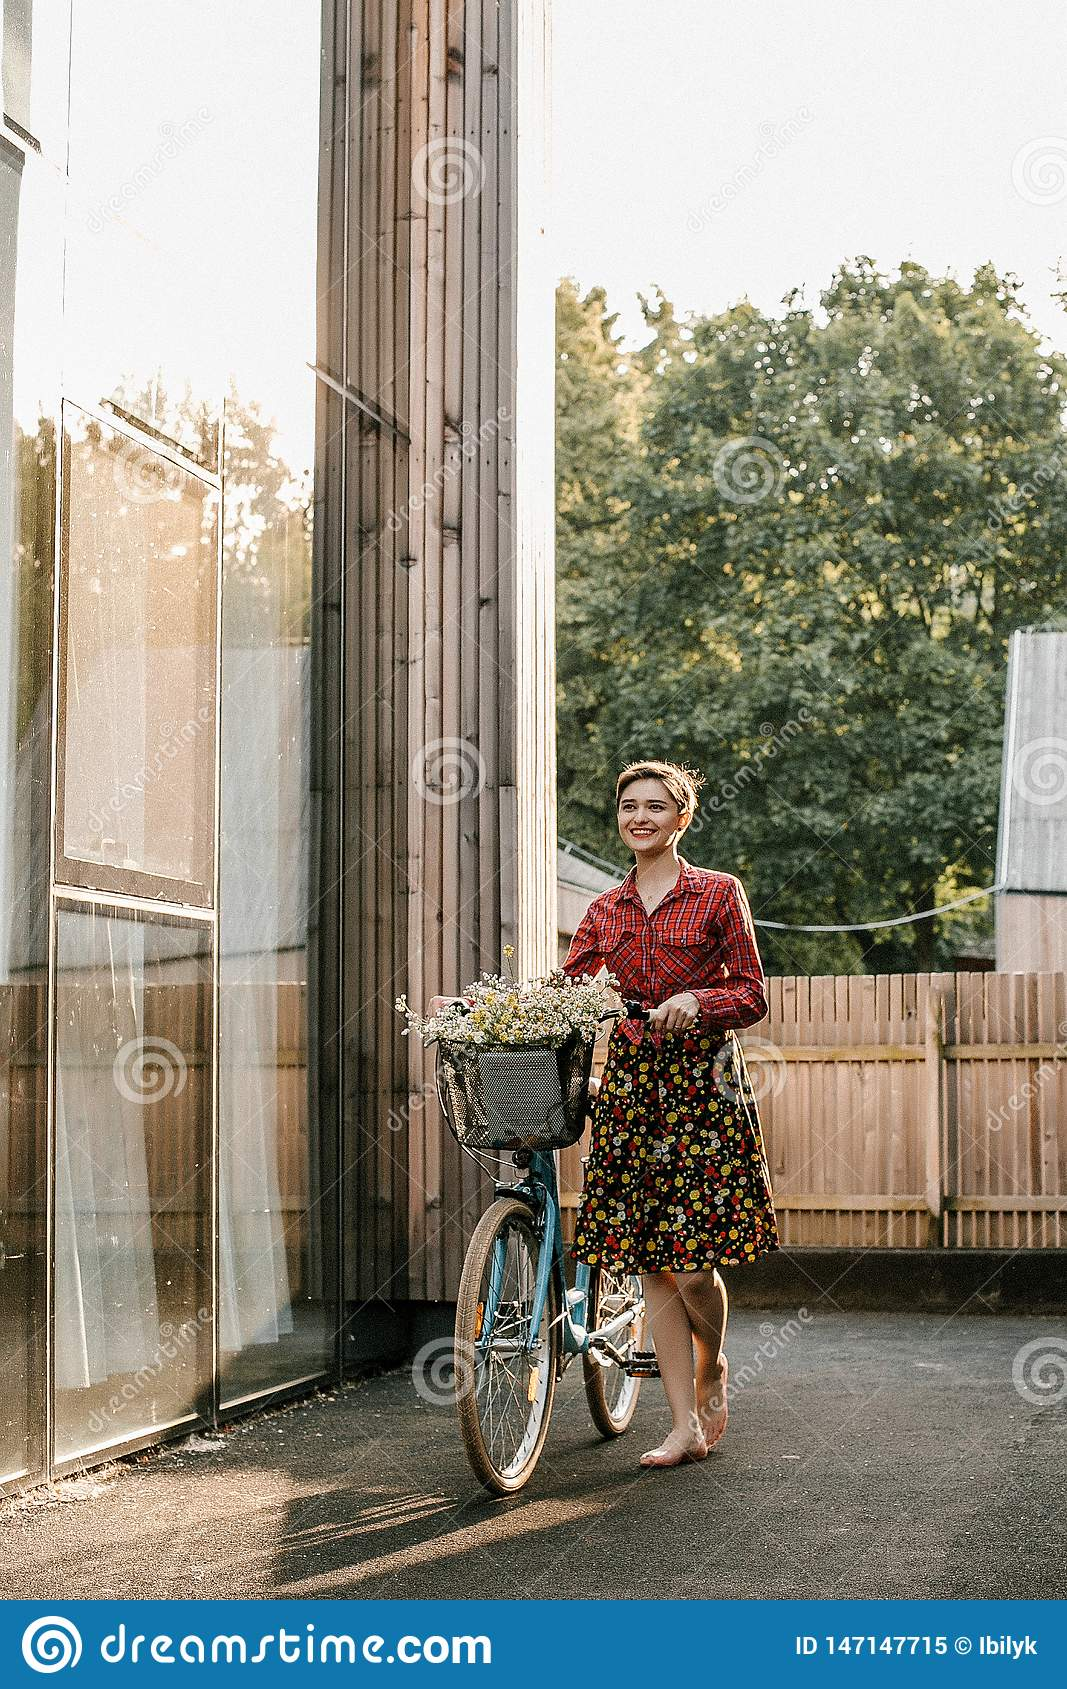 A wonderful girl travels by bike. Walking in the outdoors. Beautiful woman with a basket of flowers. Bike ride